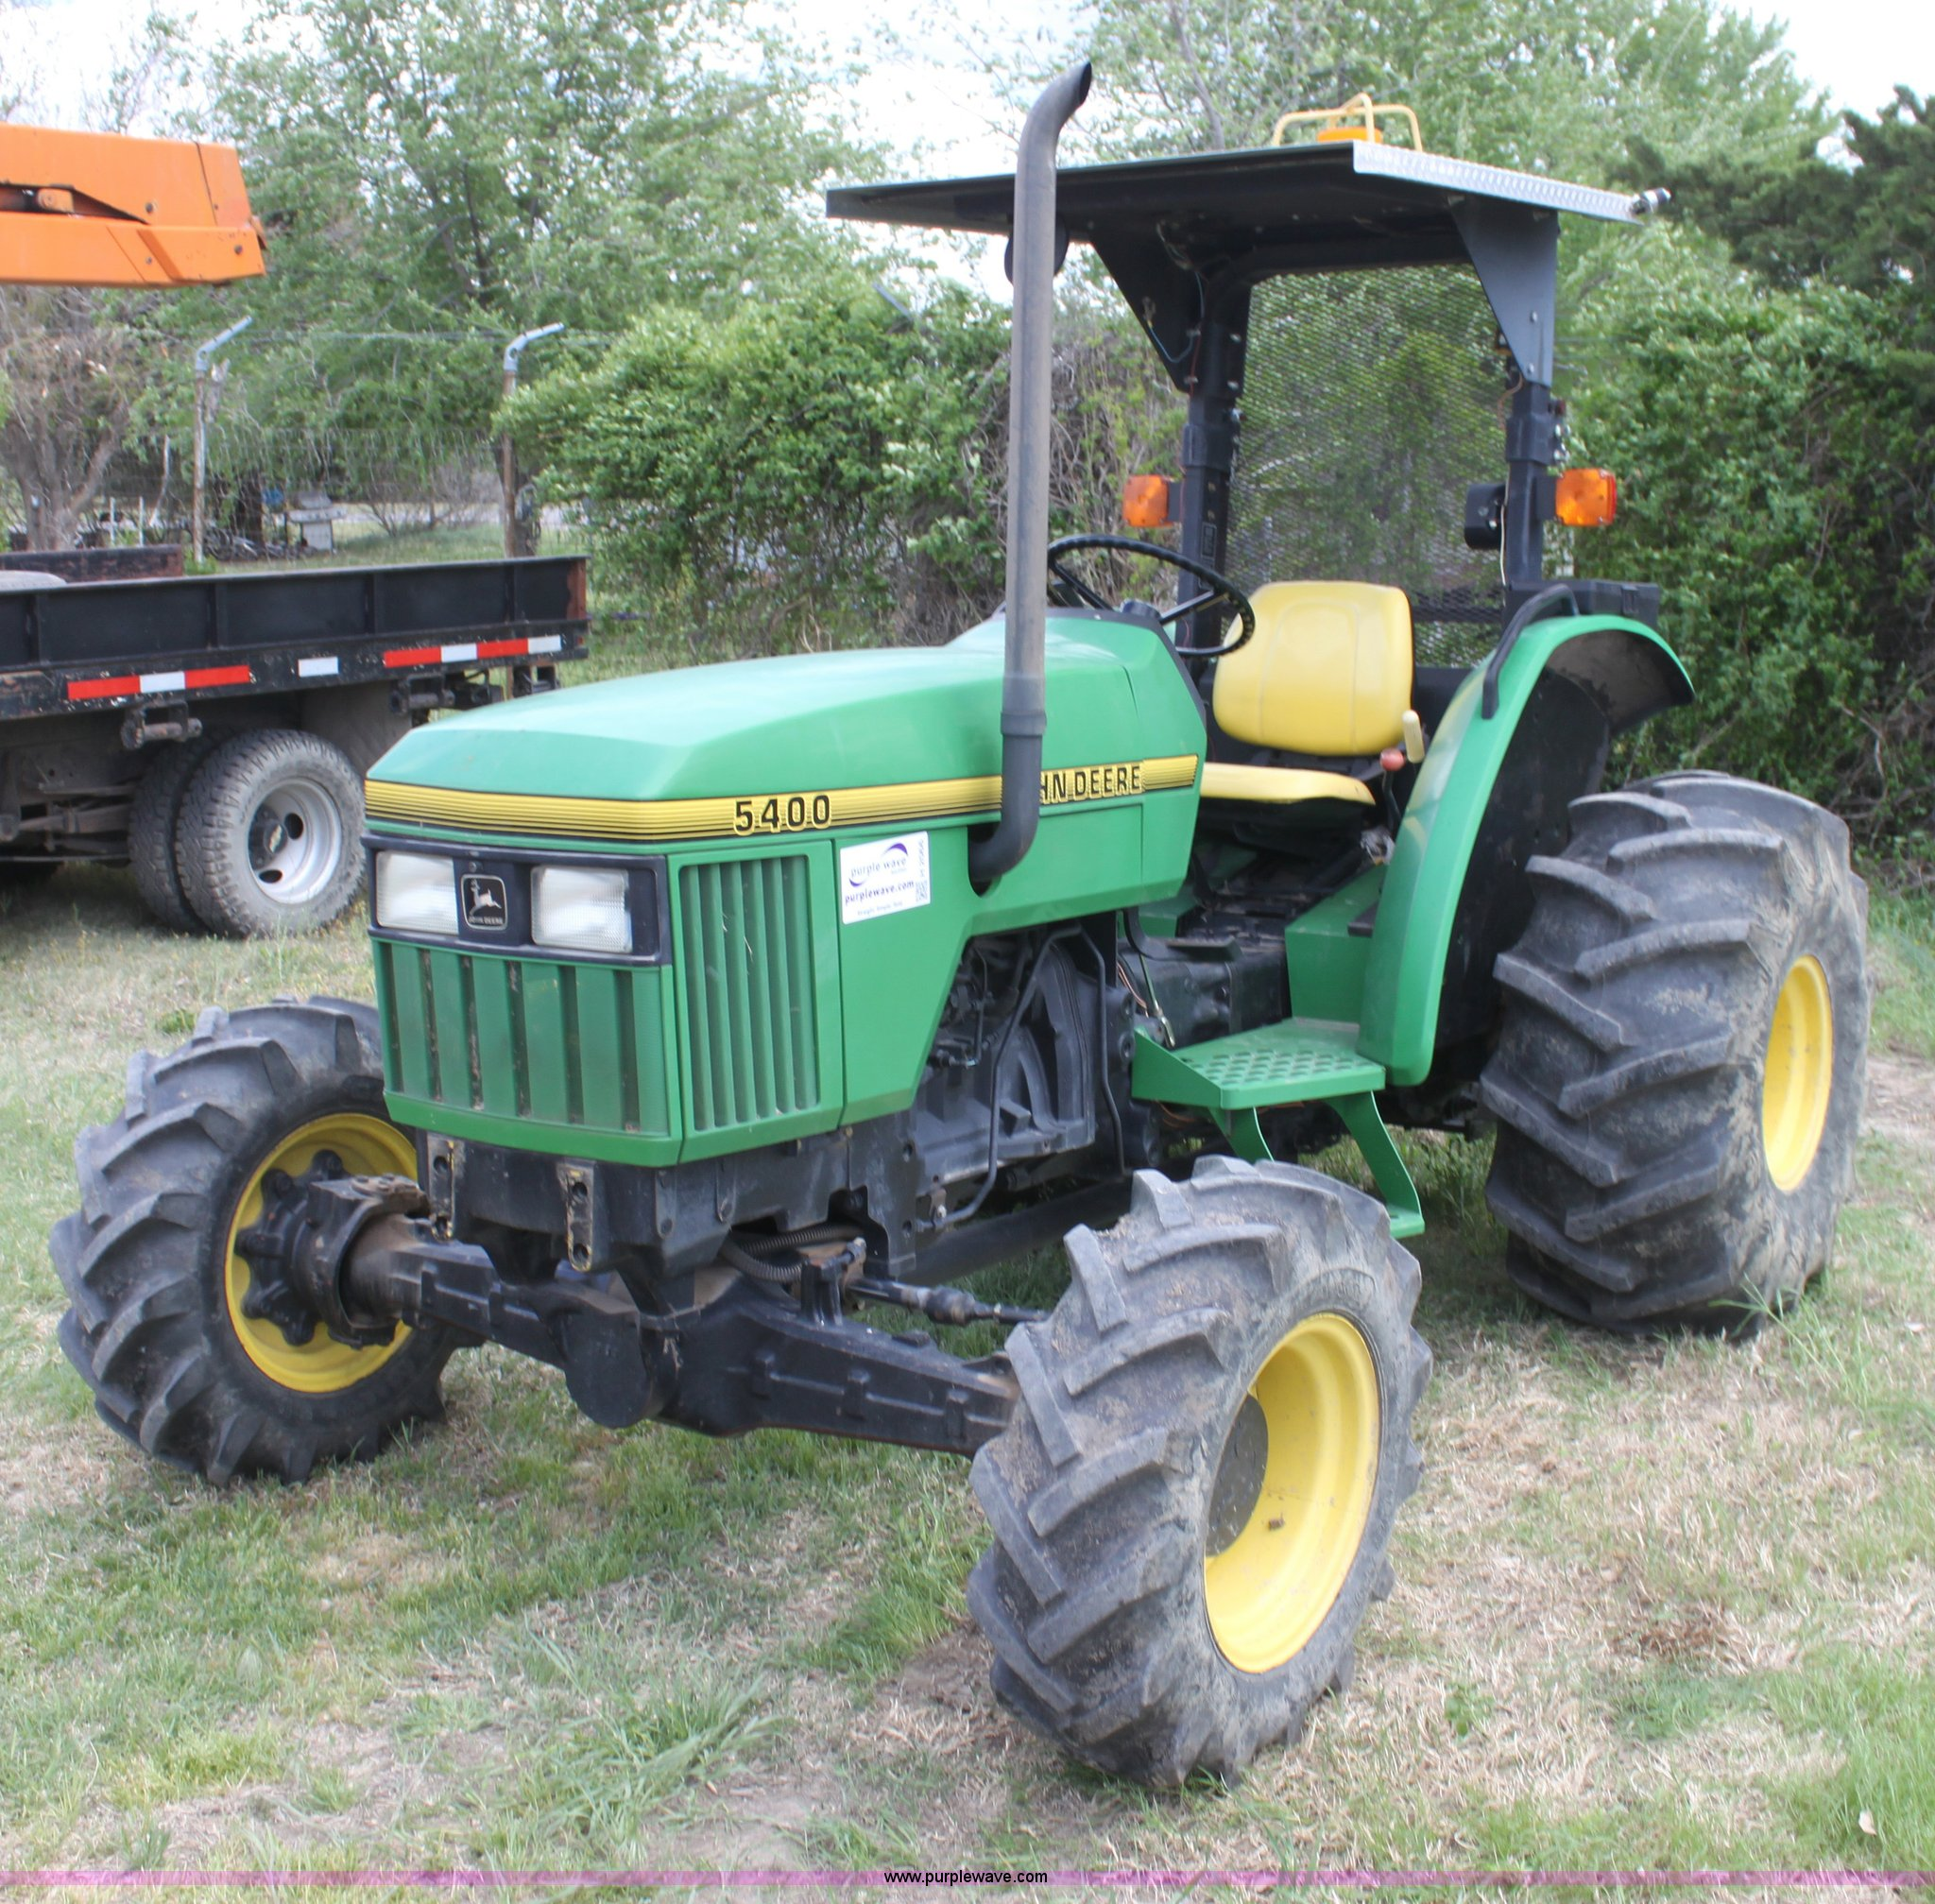 1995 John Deere 5400 Mfwd Tractor Item H2066 Sold June. H2066 For Item 1995 John Deere 5400 Mfwd Tractor. John Deere. John Deere 5400 Tractor Parts Diagram At Scoala.co